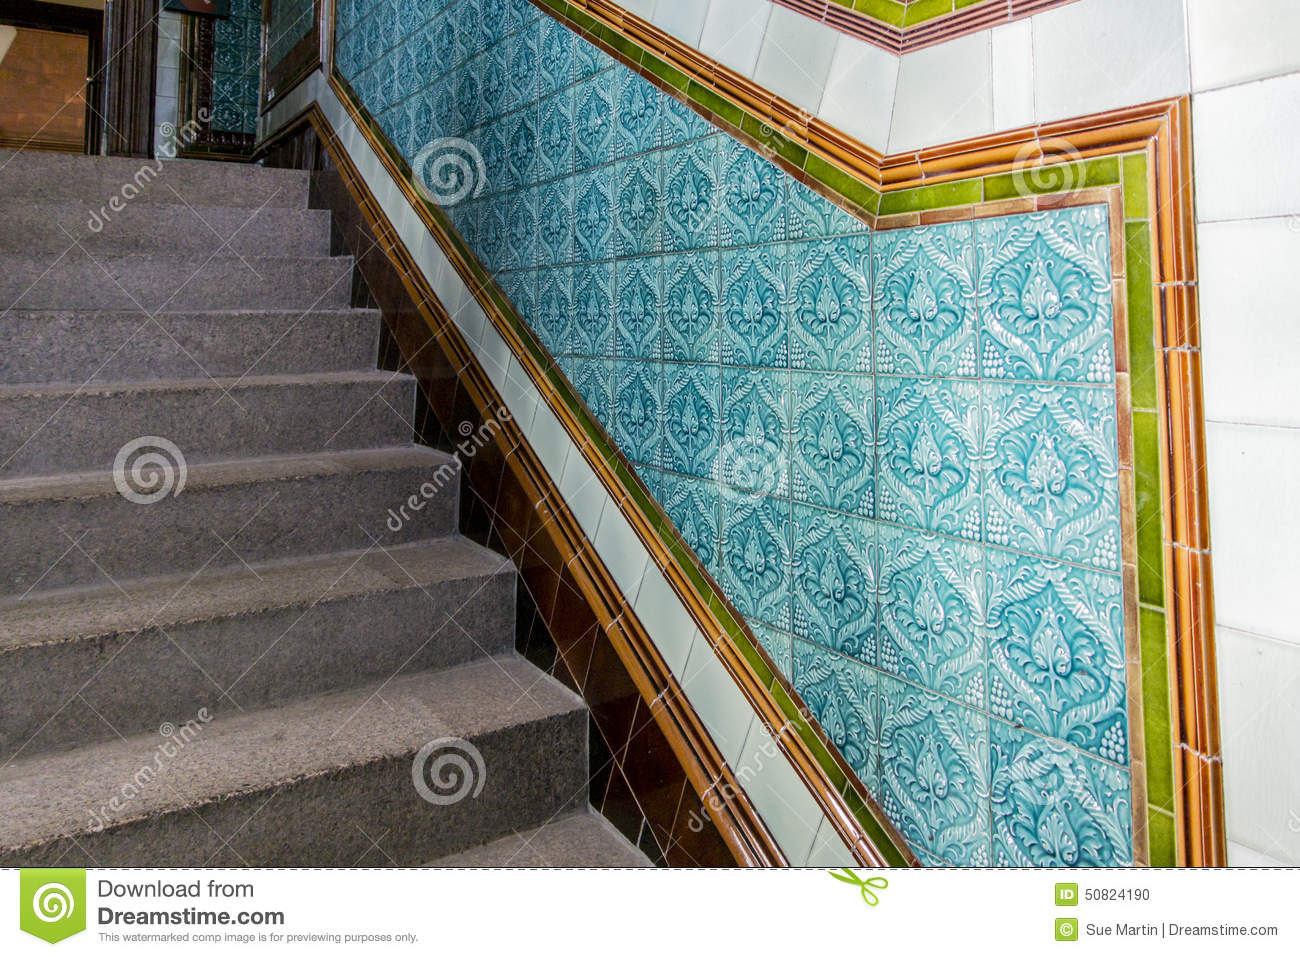 Granite staircase with patterned ceramic tiles stock photo image granite staircase with patterned ceramic tiles dailygadgetfo Image collections